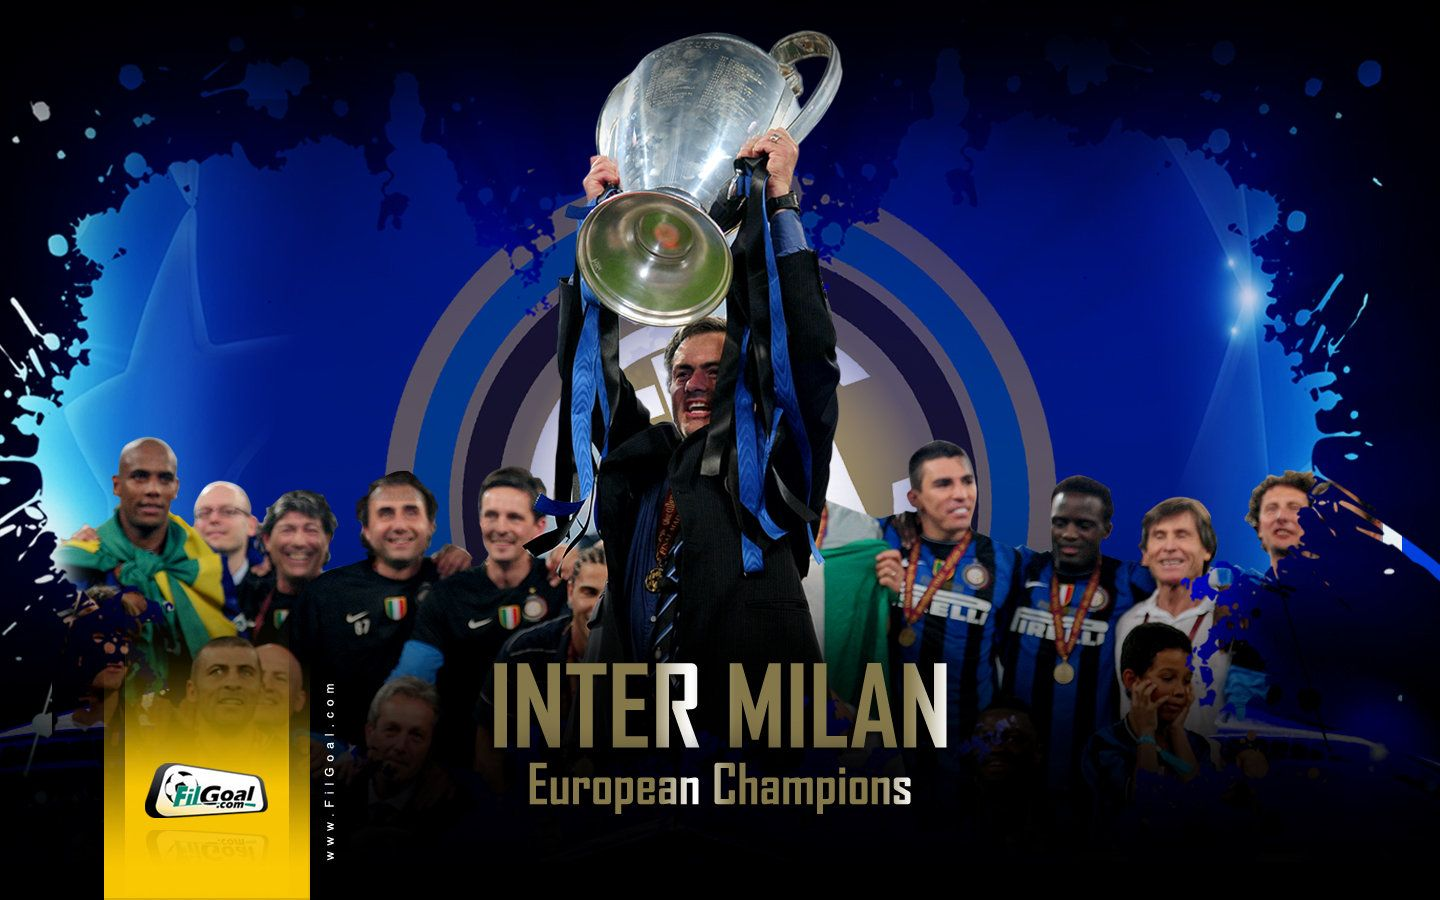 Download European Champions Inter Milan Wallpaper Inter Milan Champions Hd 1440x900 Download Hd Wallpaper Wallpapertip